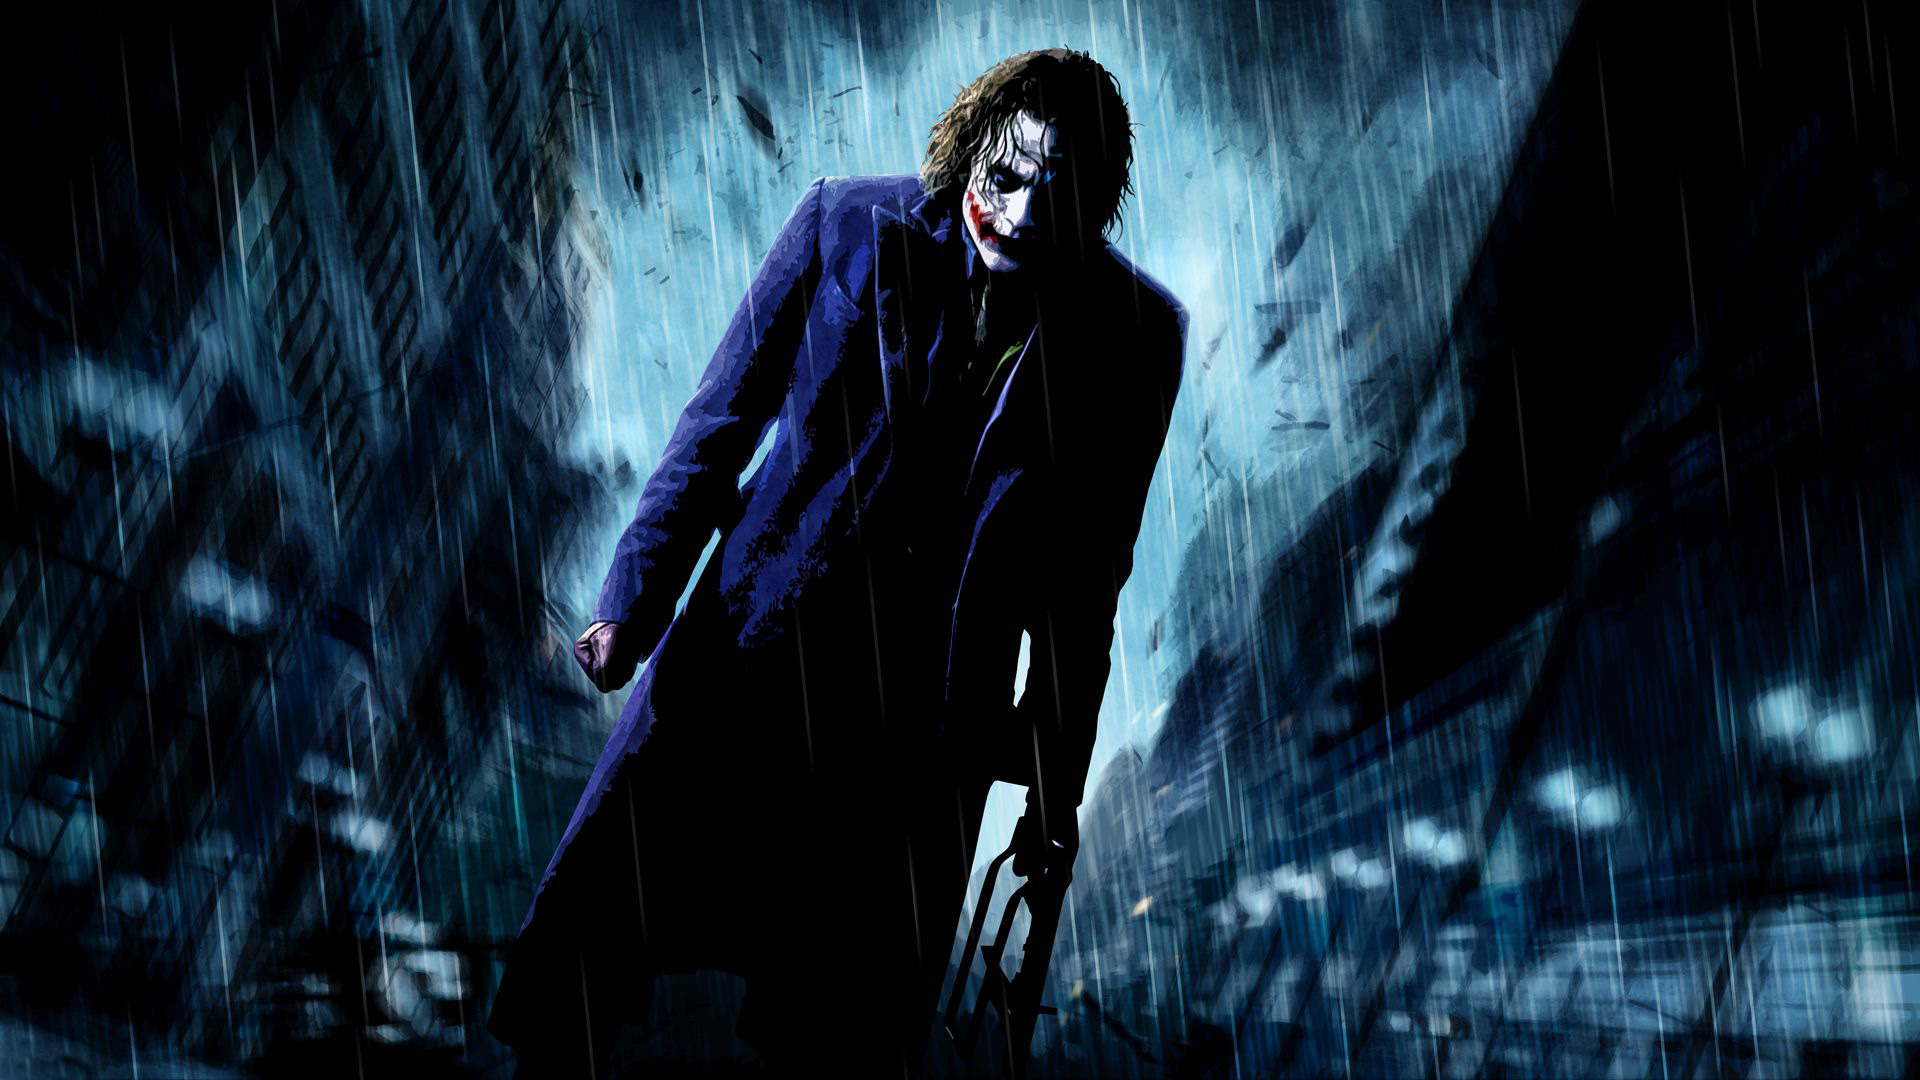 Joker Hd Wallpaper With Quotes Heath Ledger Joker Wallpapers Hd 42 Wallpapers